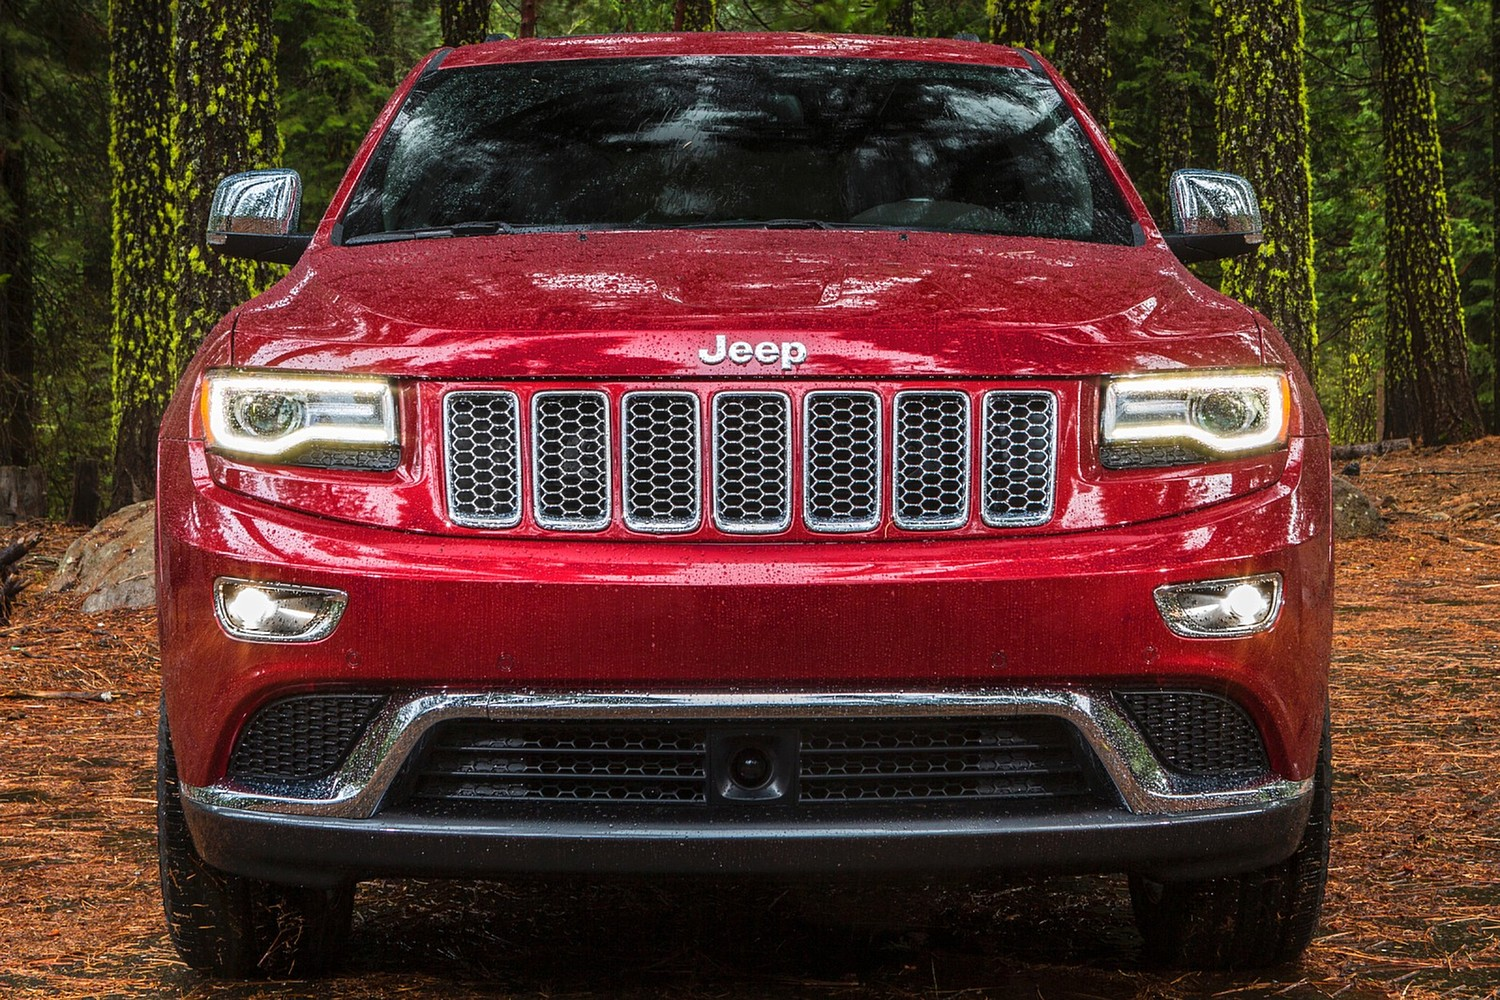 Jeep Grand Cherokee Summit 4dr SUV Exterior (2015 model year shown)